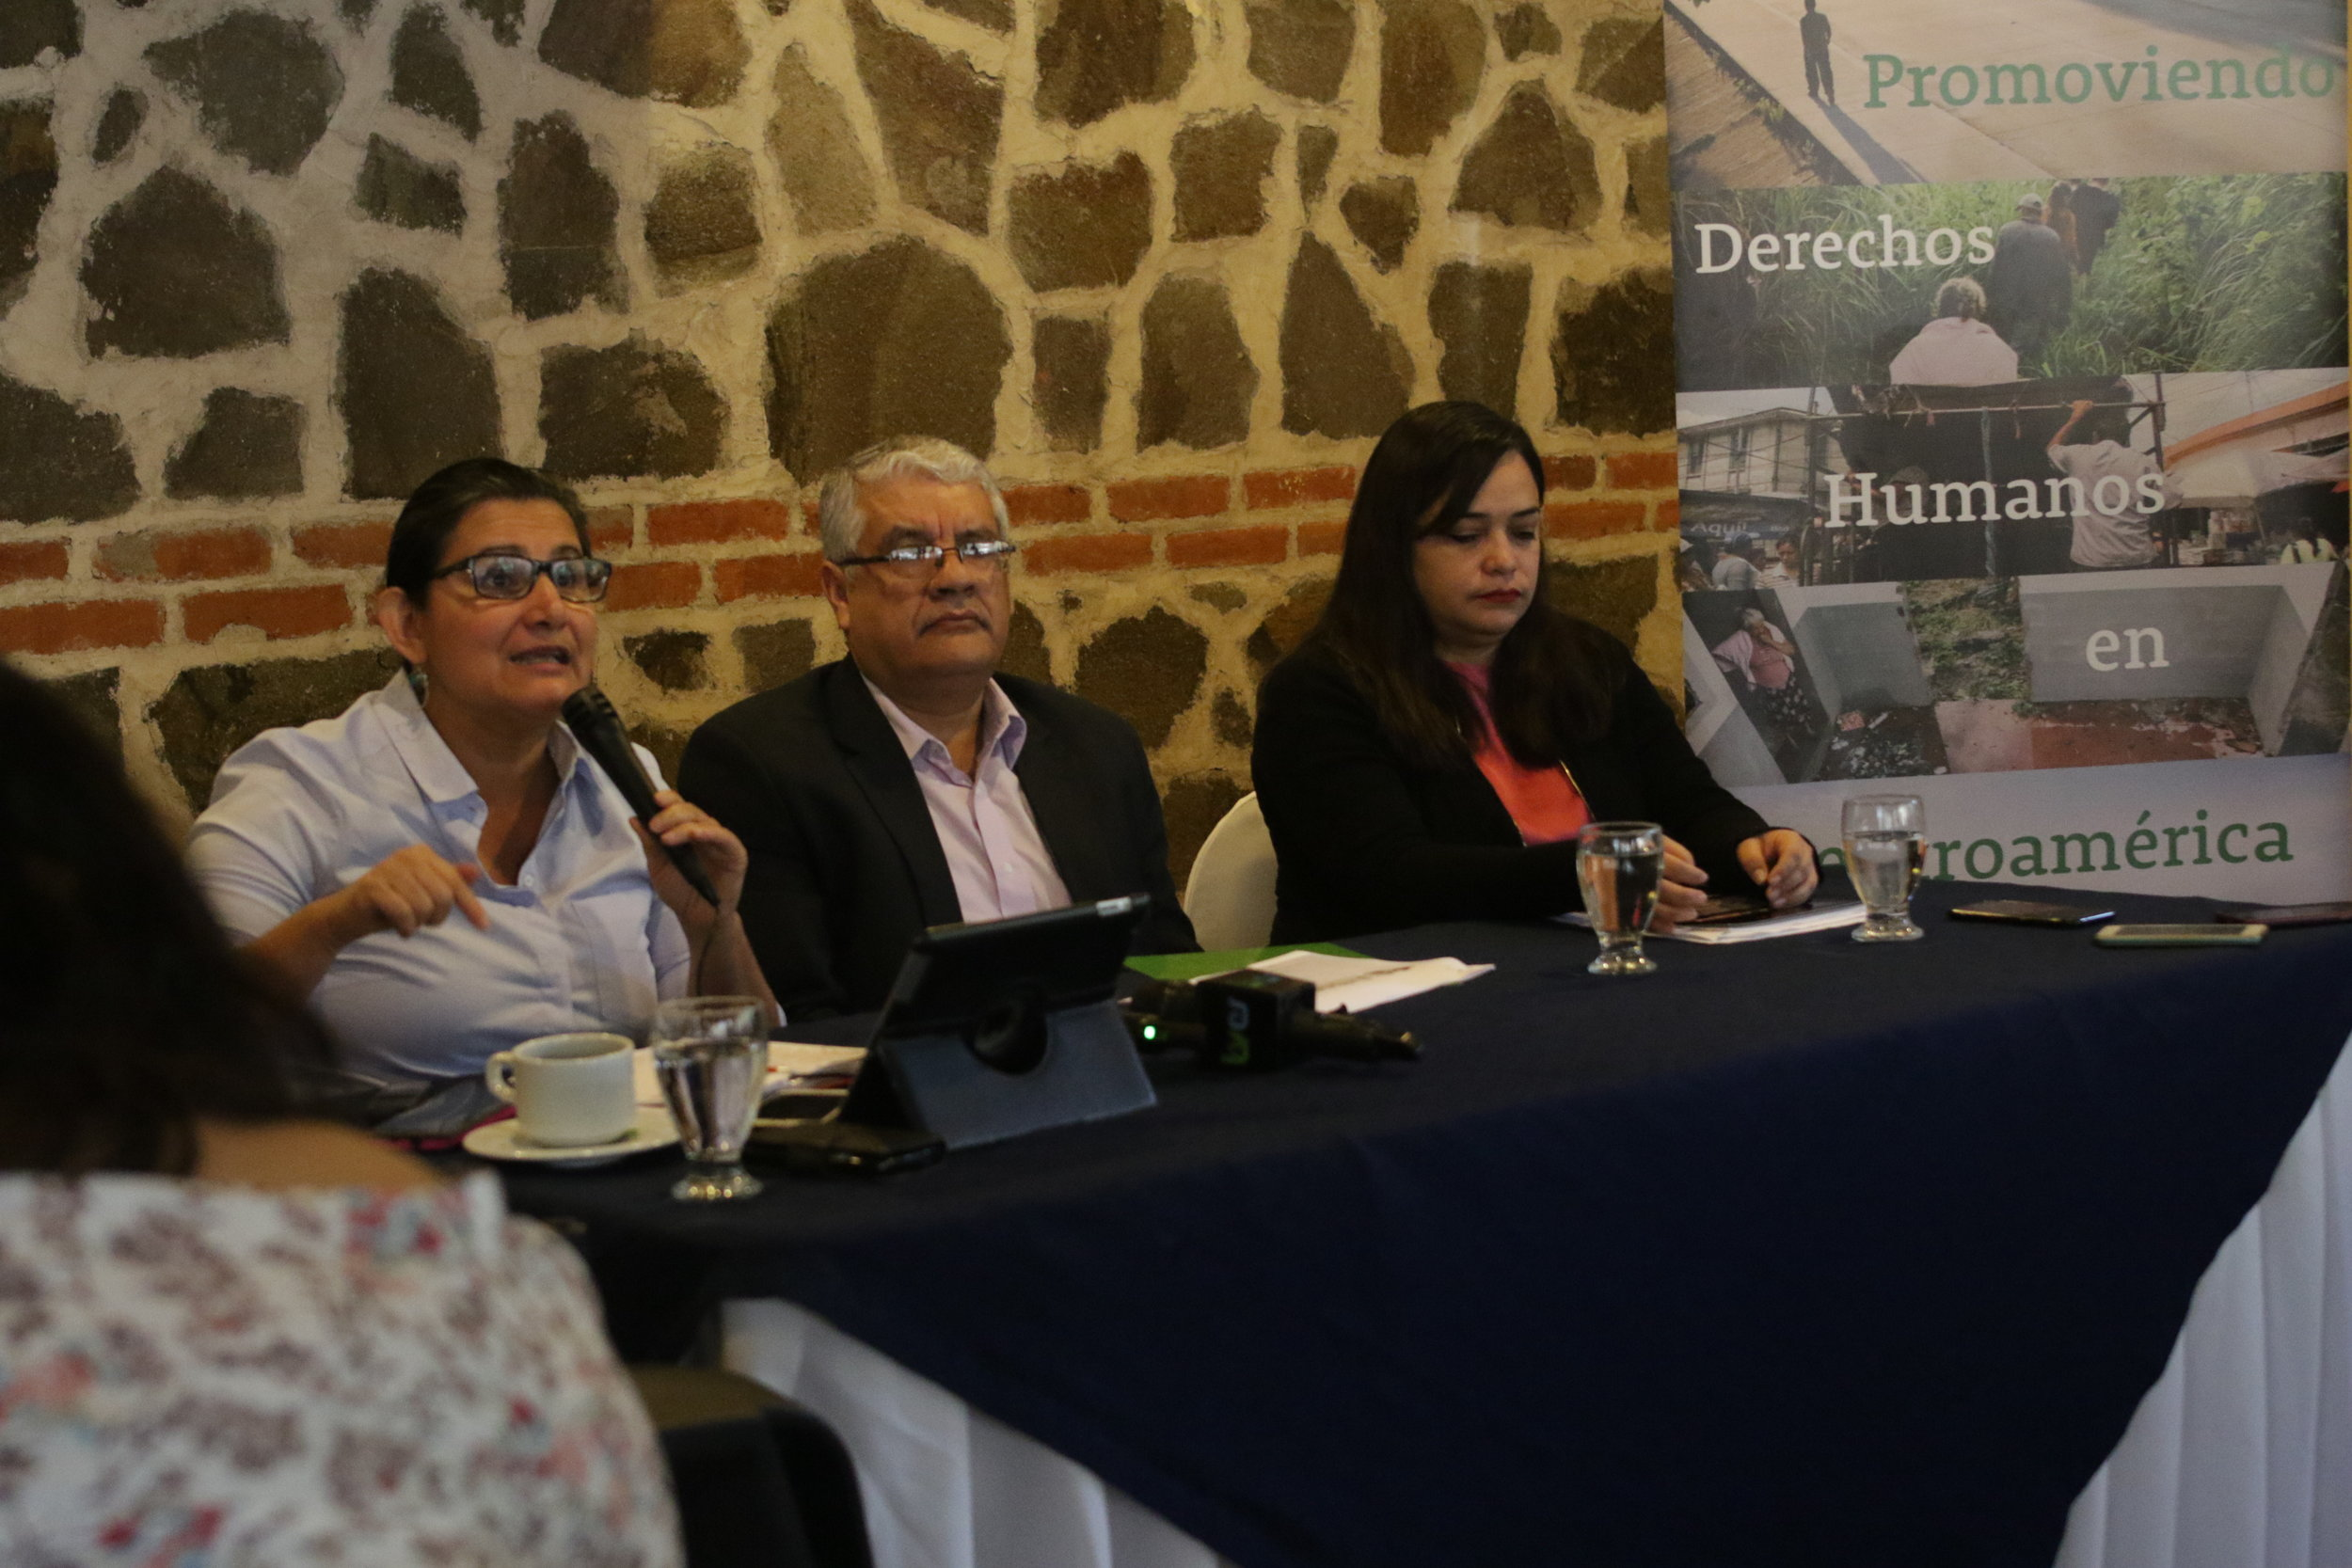 Celia Medrano, Cristosal Chief Program Officer, speaks at a press conference Tuesday. / Photo Cristosal